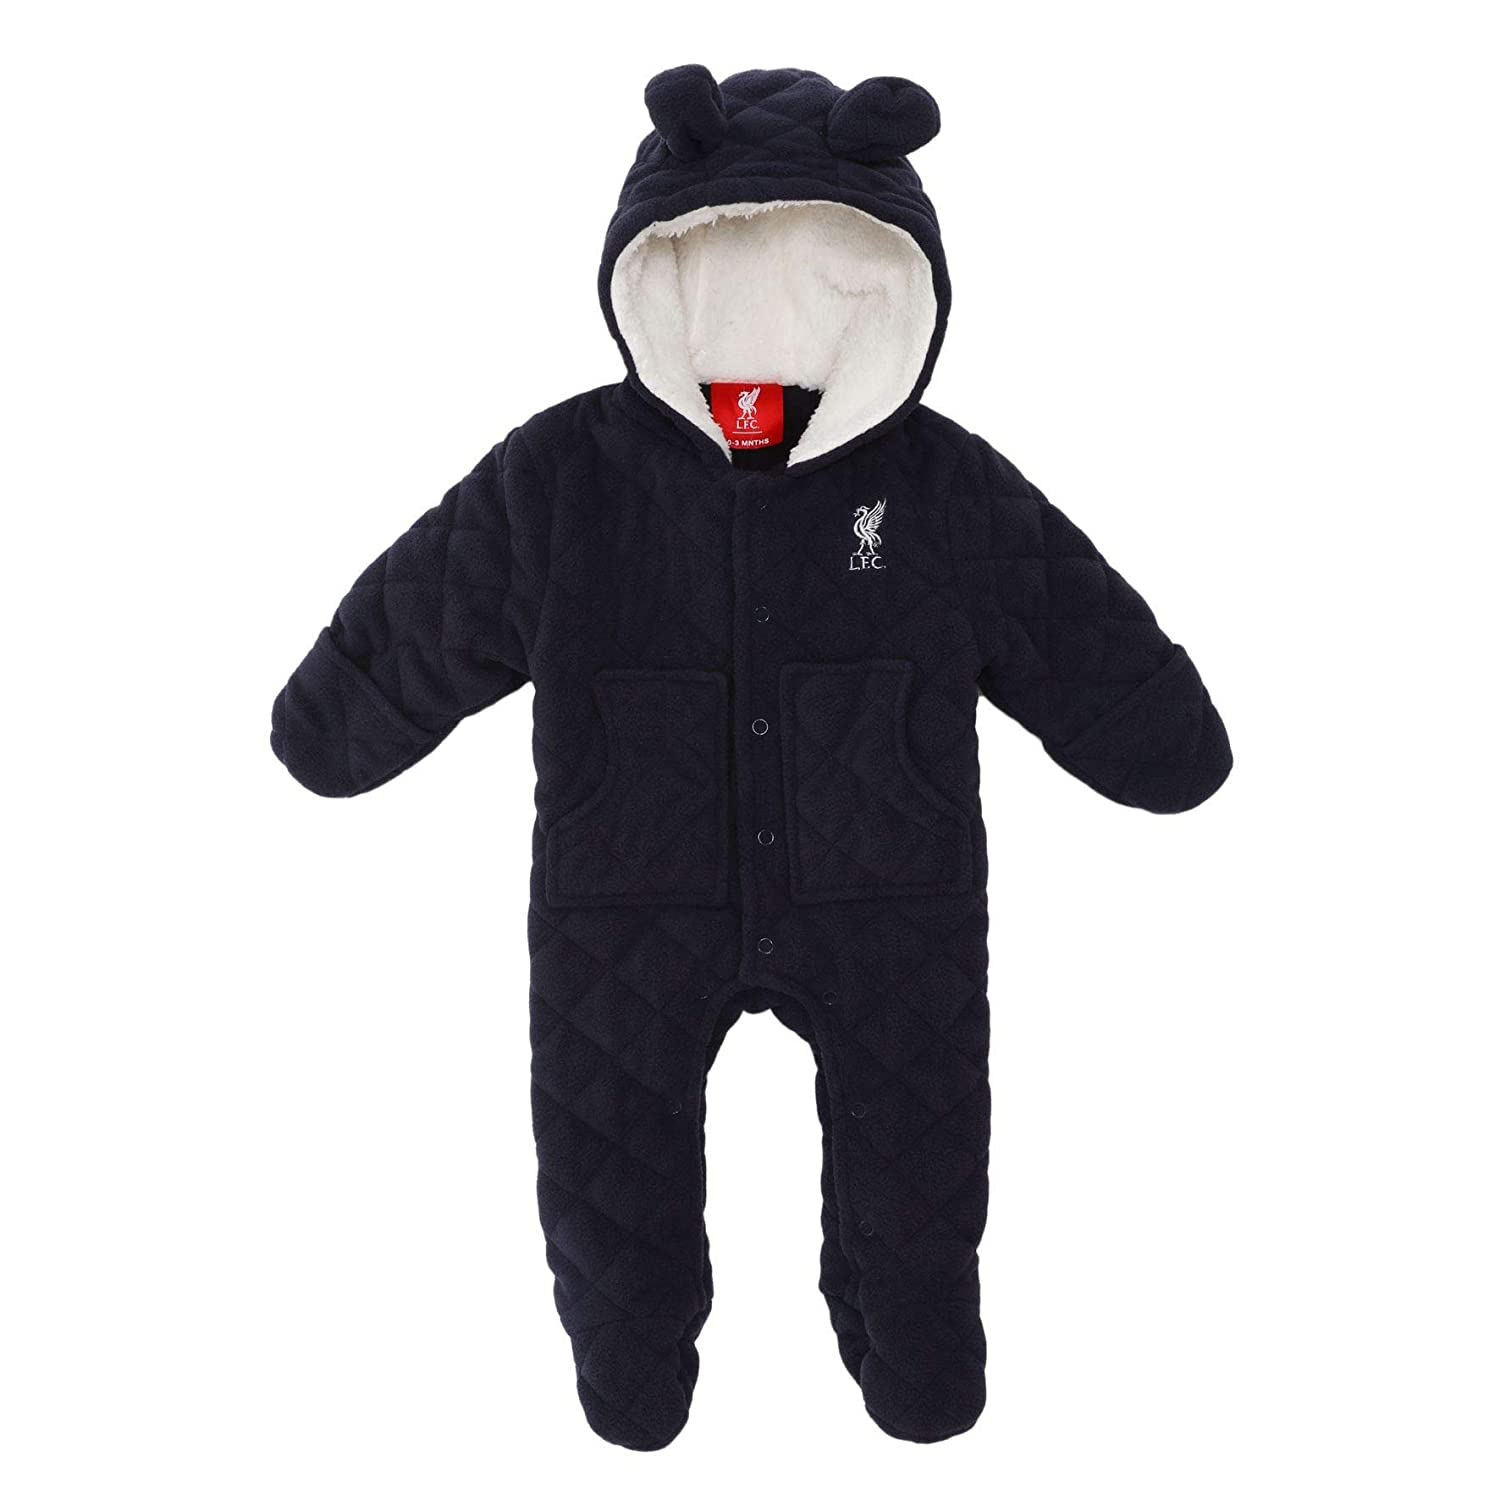 a410b5a5f82f Liverpool FC Blue Baby Boy Football Navy Quilted Snow Suit AW 18 19 ...